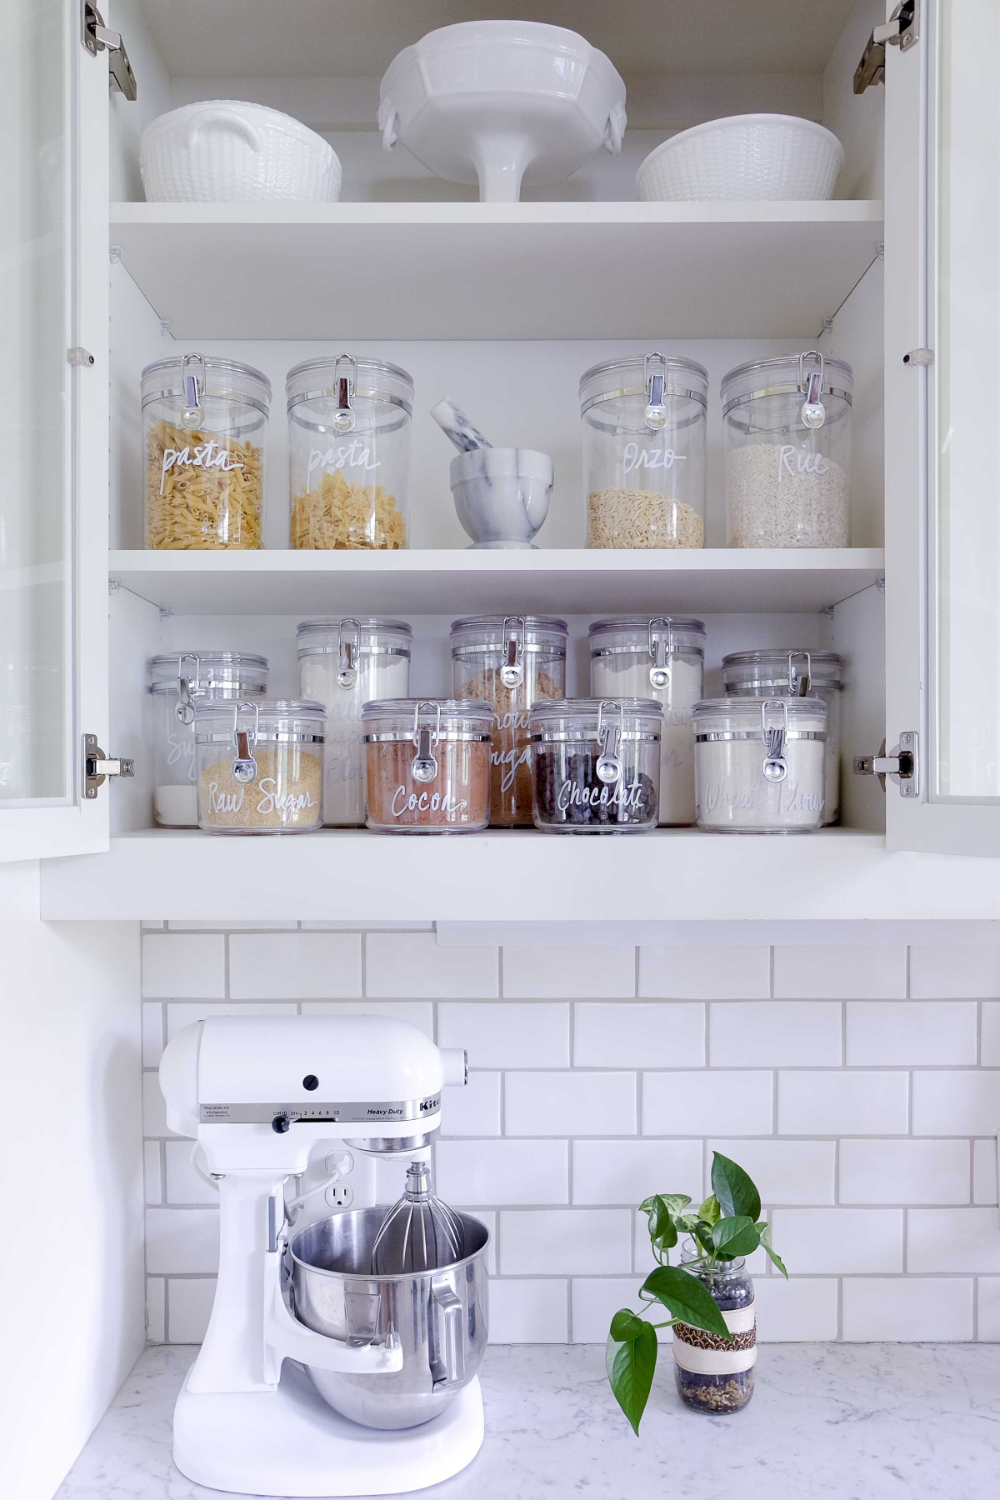 This Is The Home Edit S Guide To Organizing Your Kitchen In 2020 The Home Edit Kitchen Plans Kitchen Models